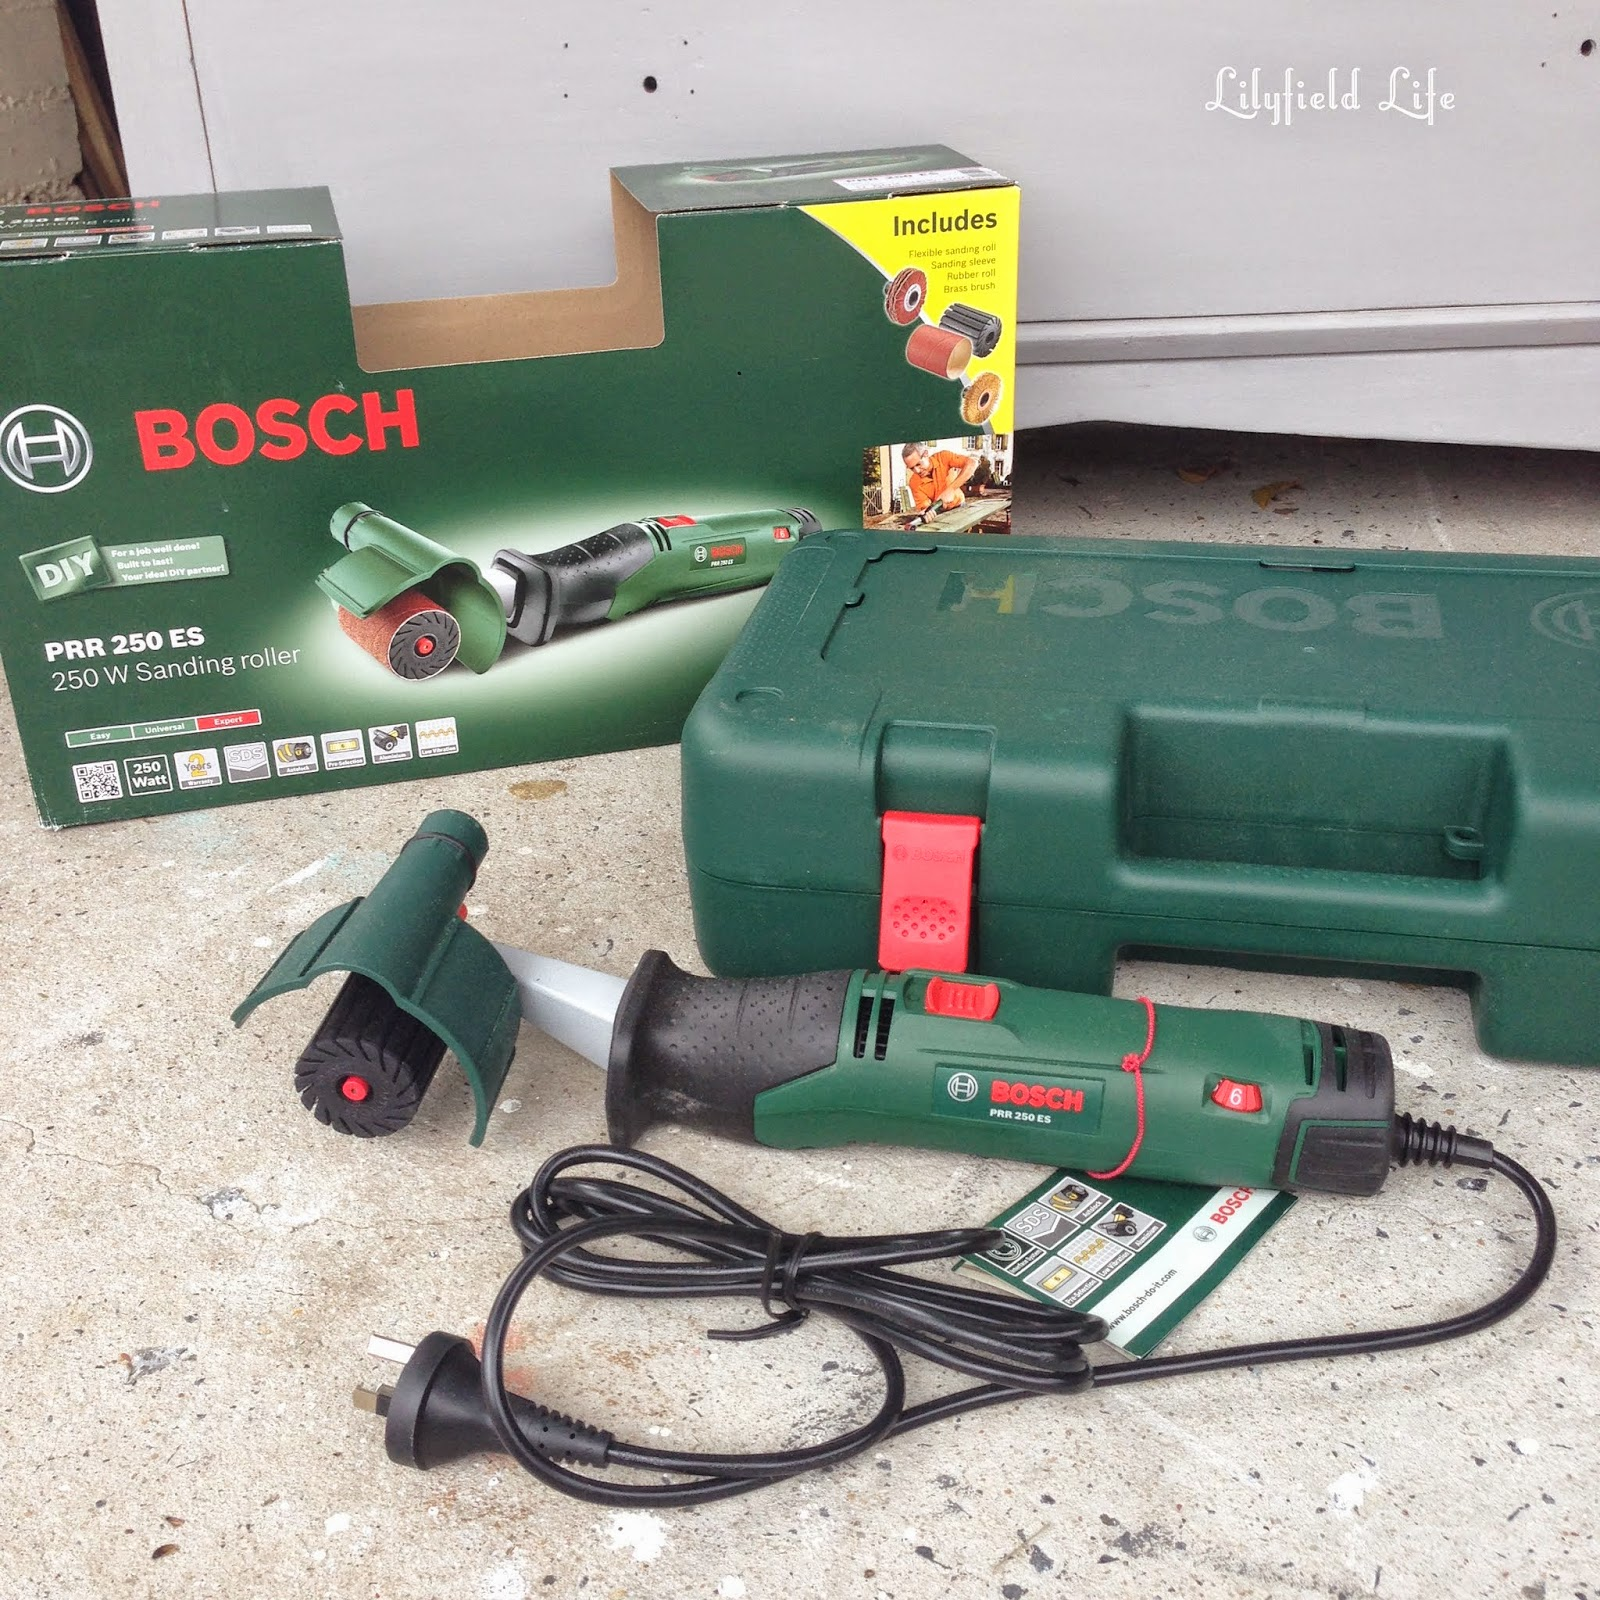 lilyfield life bosch prr 250w sanding roller review. Black Bedroom Furniture Sets. Home Design Ideas